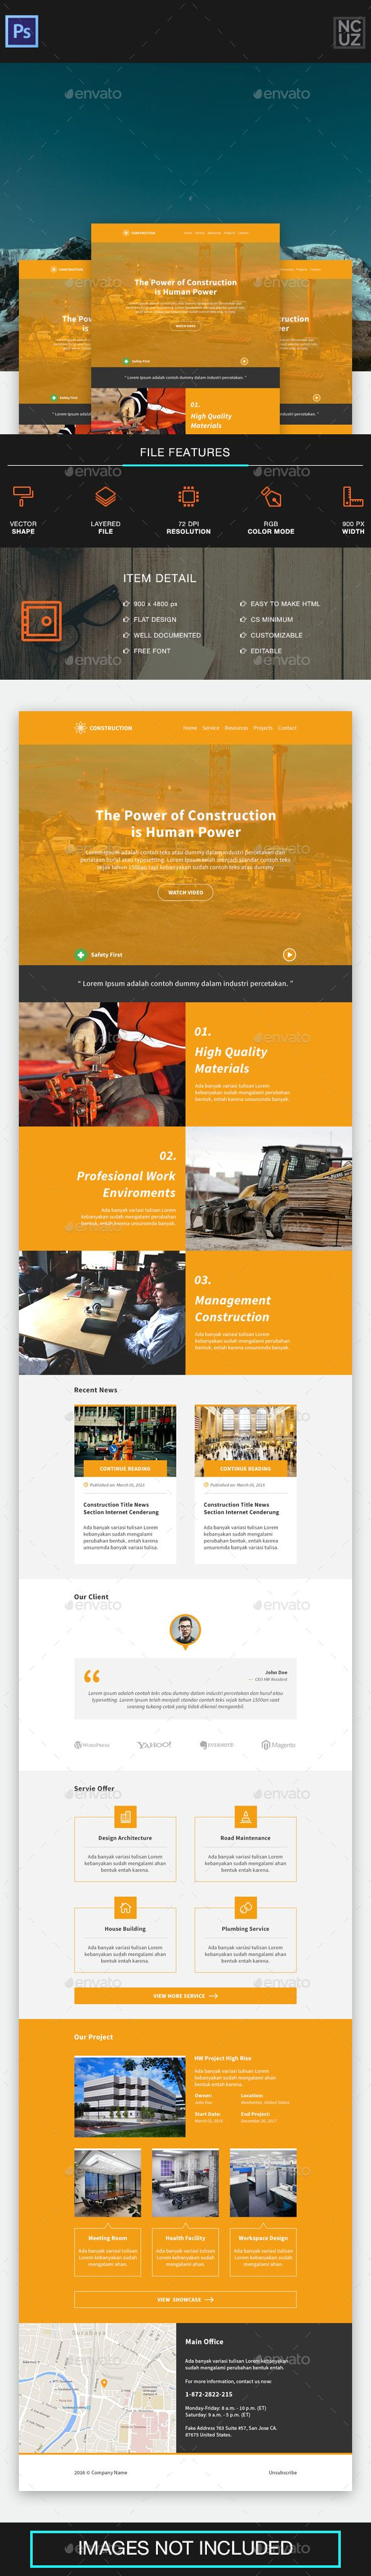 Construction Company E-newsletter Template PSD. Download here: http://graphicriver.net/item/construction-company-enewsletter/15236358?ref=ksioks